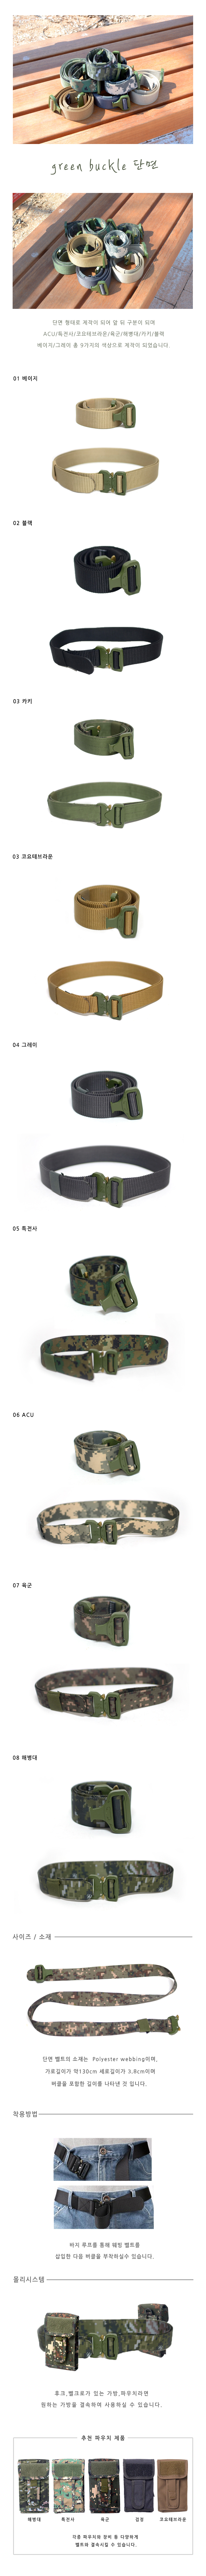 green_buckle_section.jpg